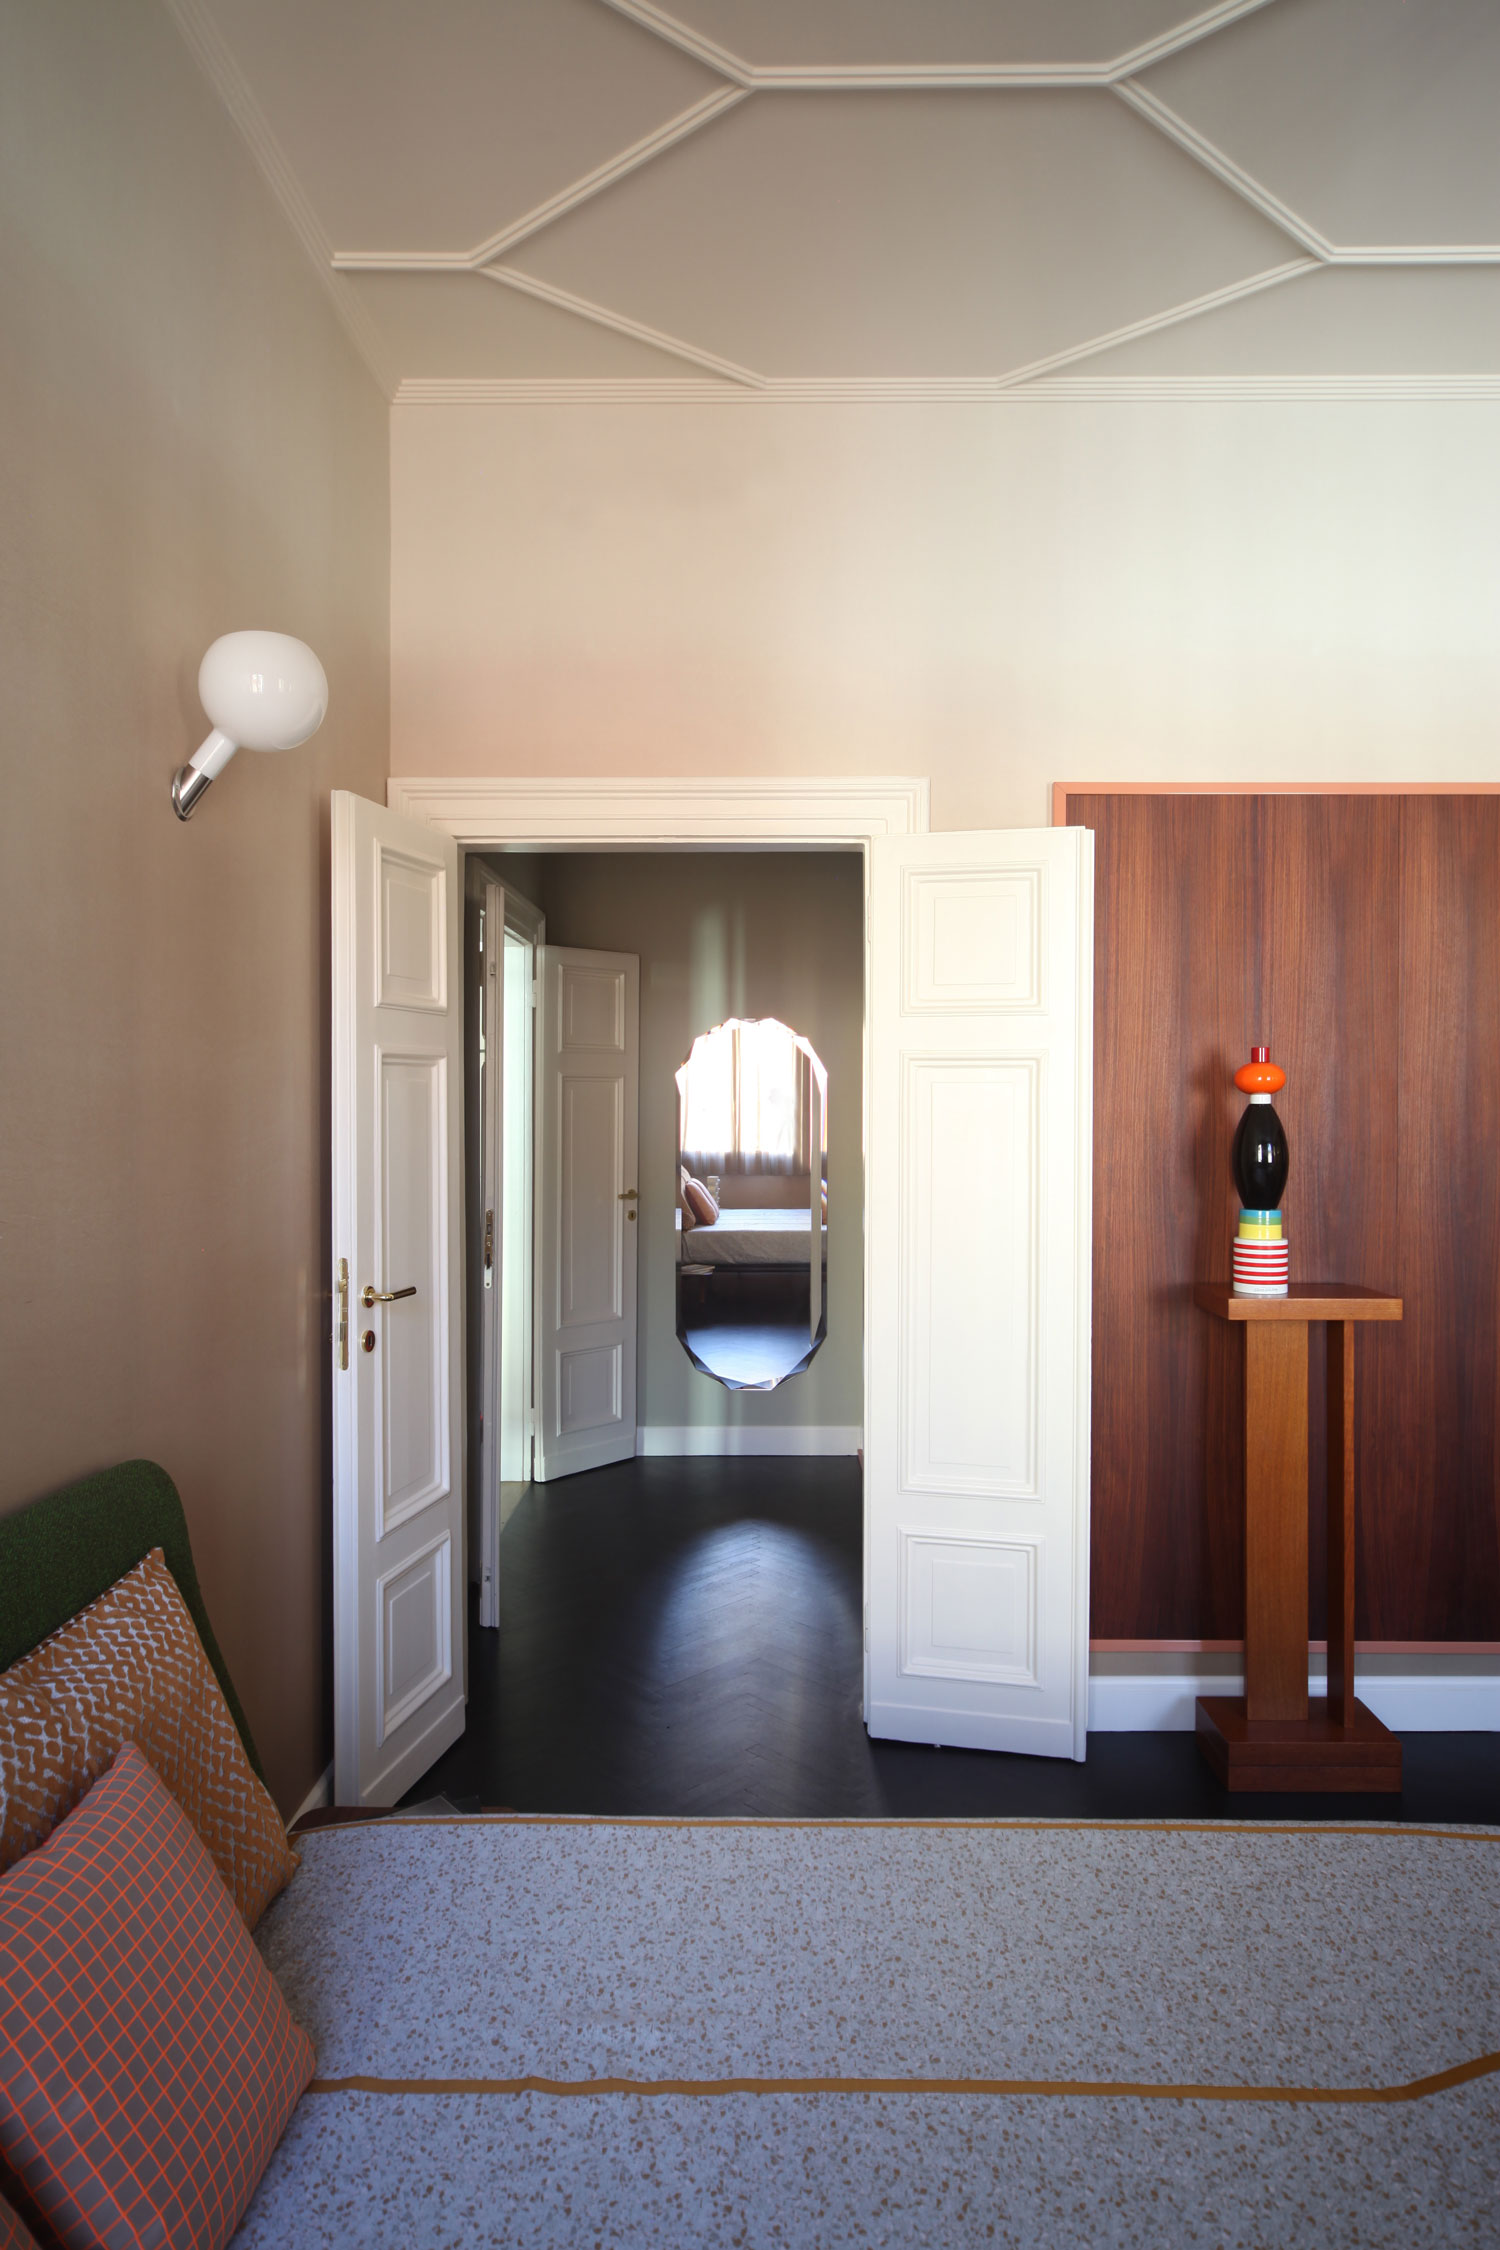 Extraordinary Heritage Apartment Renovation in Venice by Marcante-Testa (UdA) | Yellowtrace